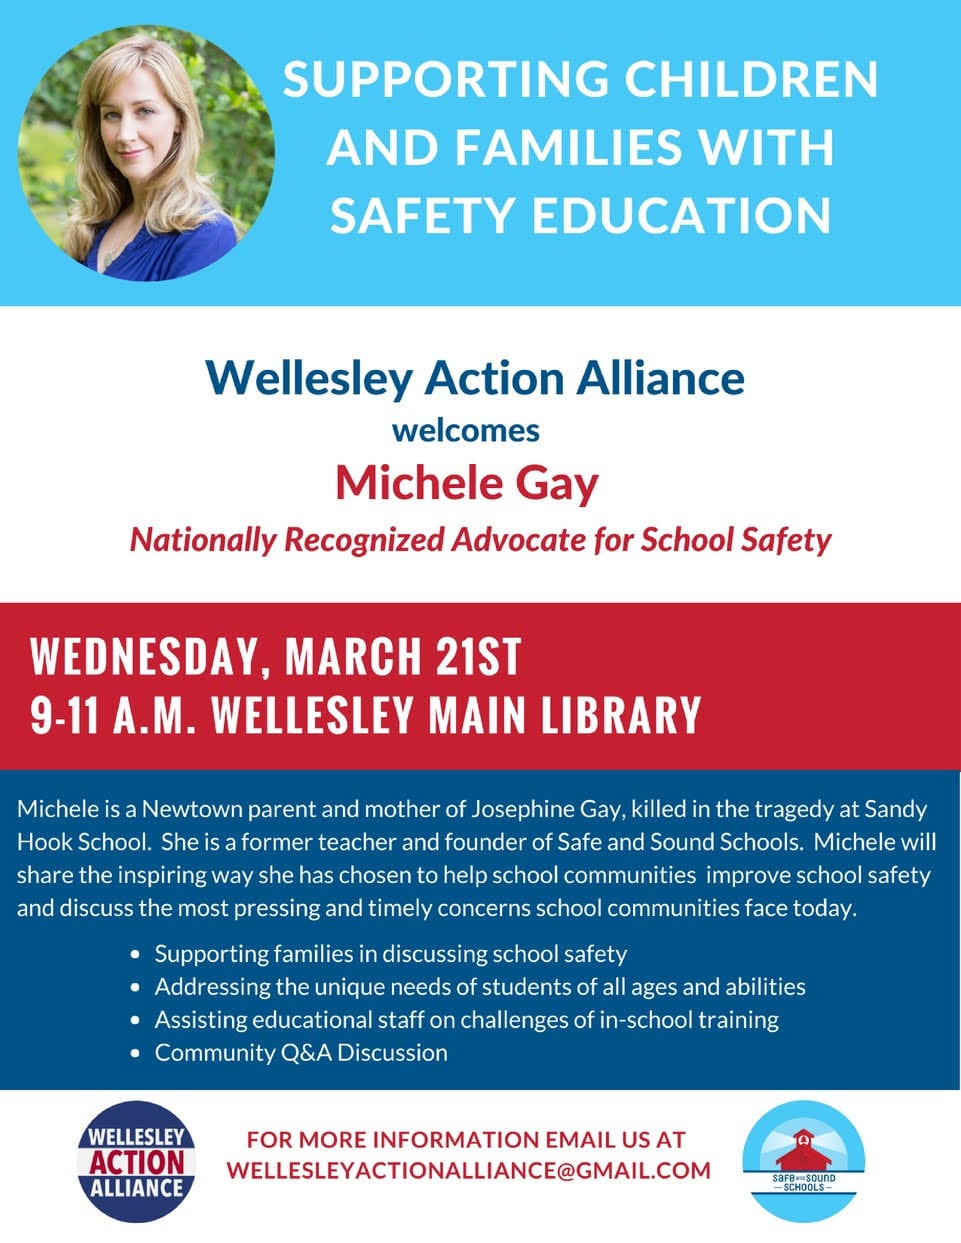 Wellesley Action Alliance